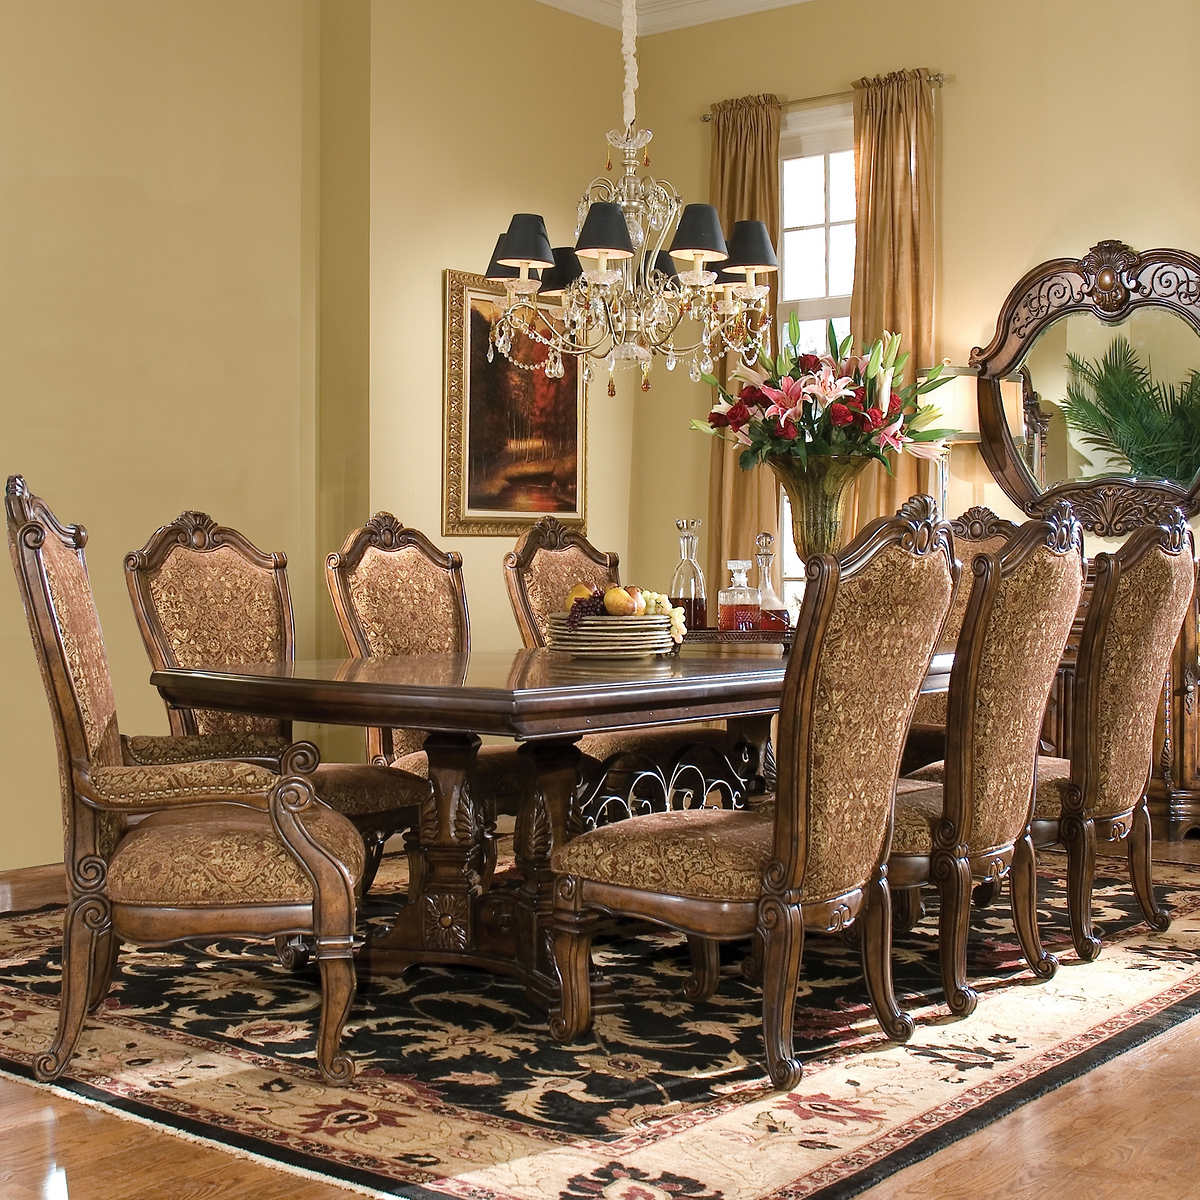 decorative stools for living room.htm ellington 9 piece dining set  ellington 9 piece dining set